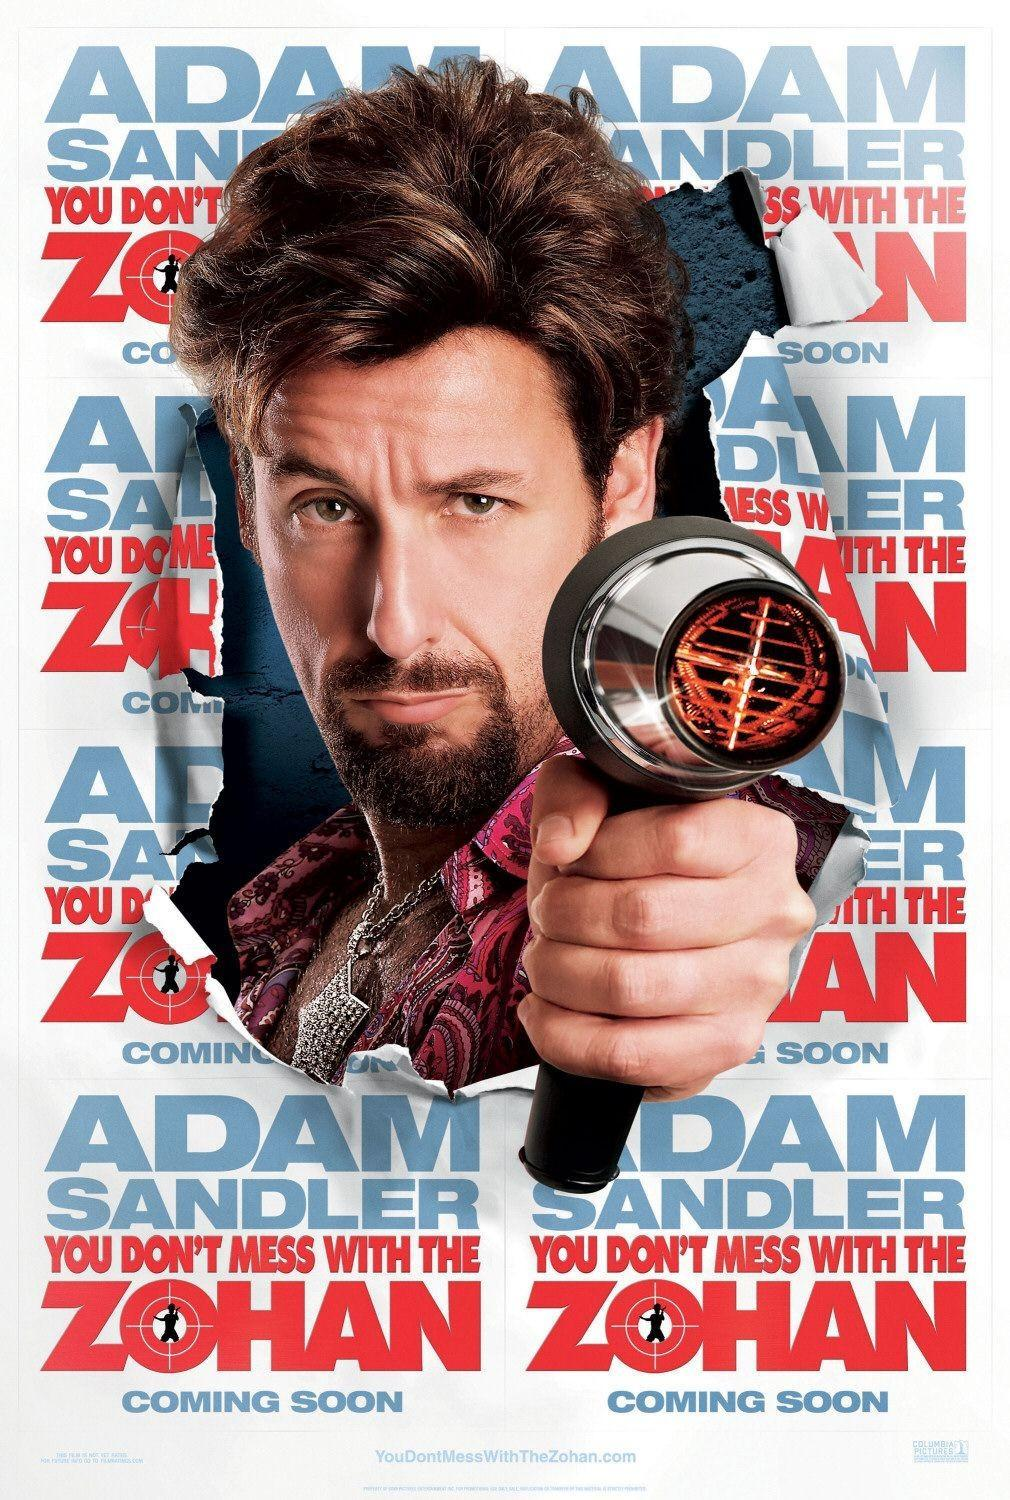 you-dont-mess-with-the-zohan-poster-zohan-fa760b47b5189faec243d77b5a87c4d9-image-275690